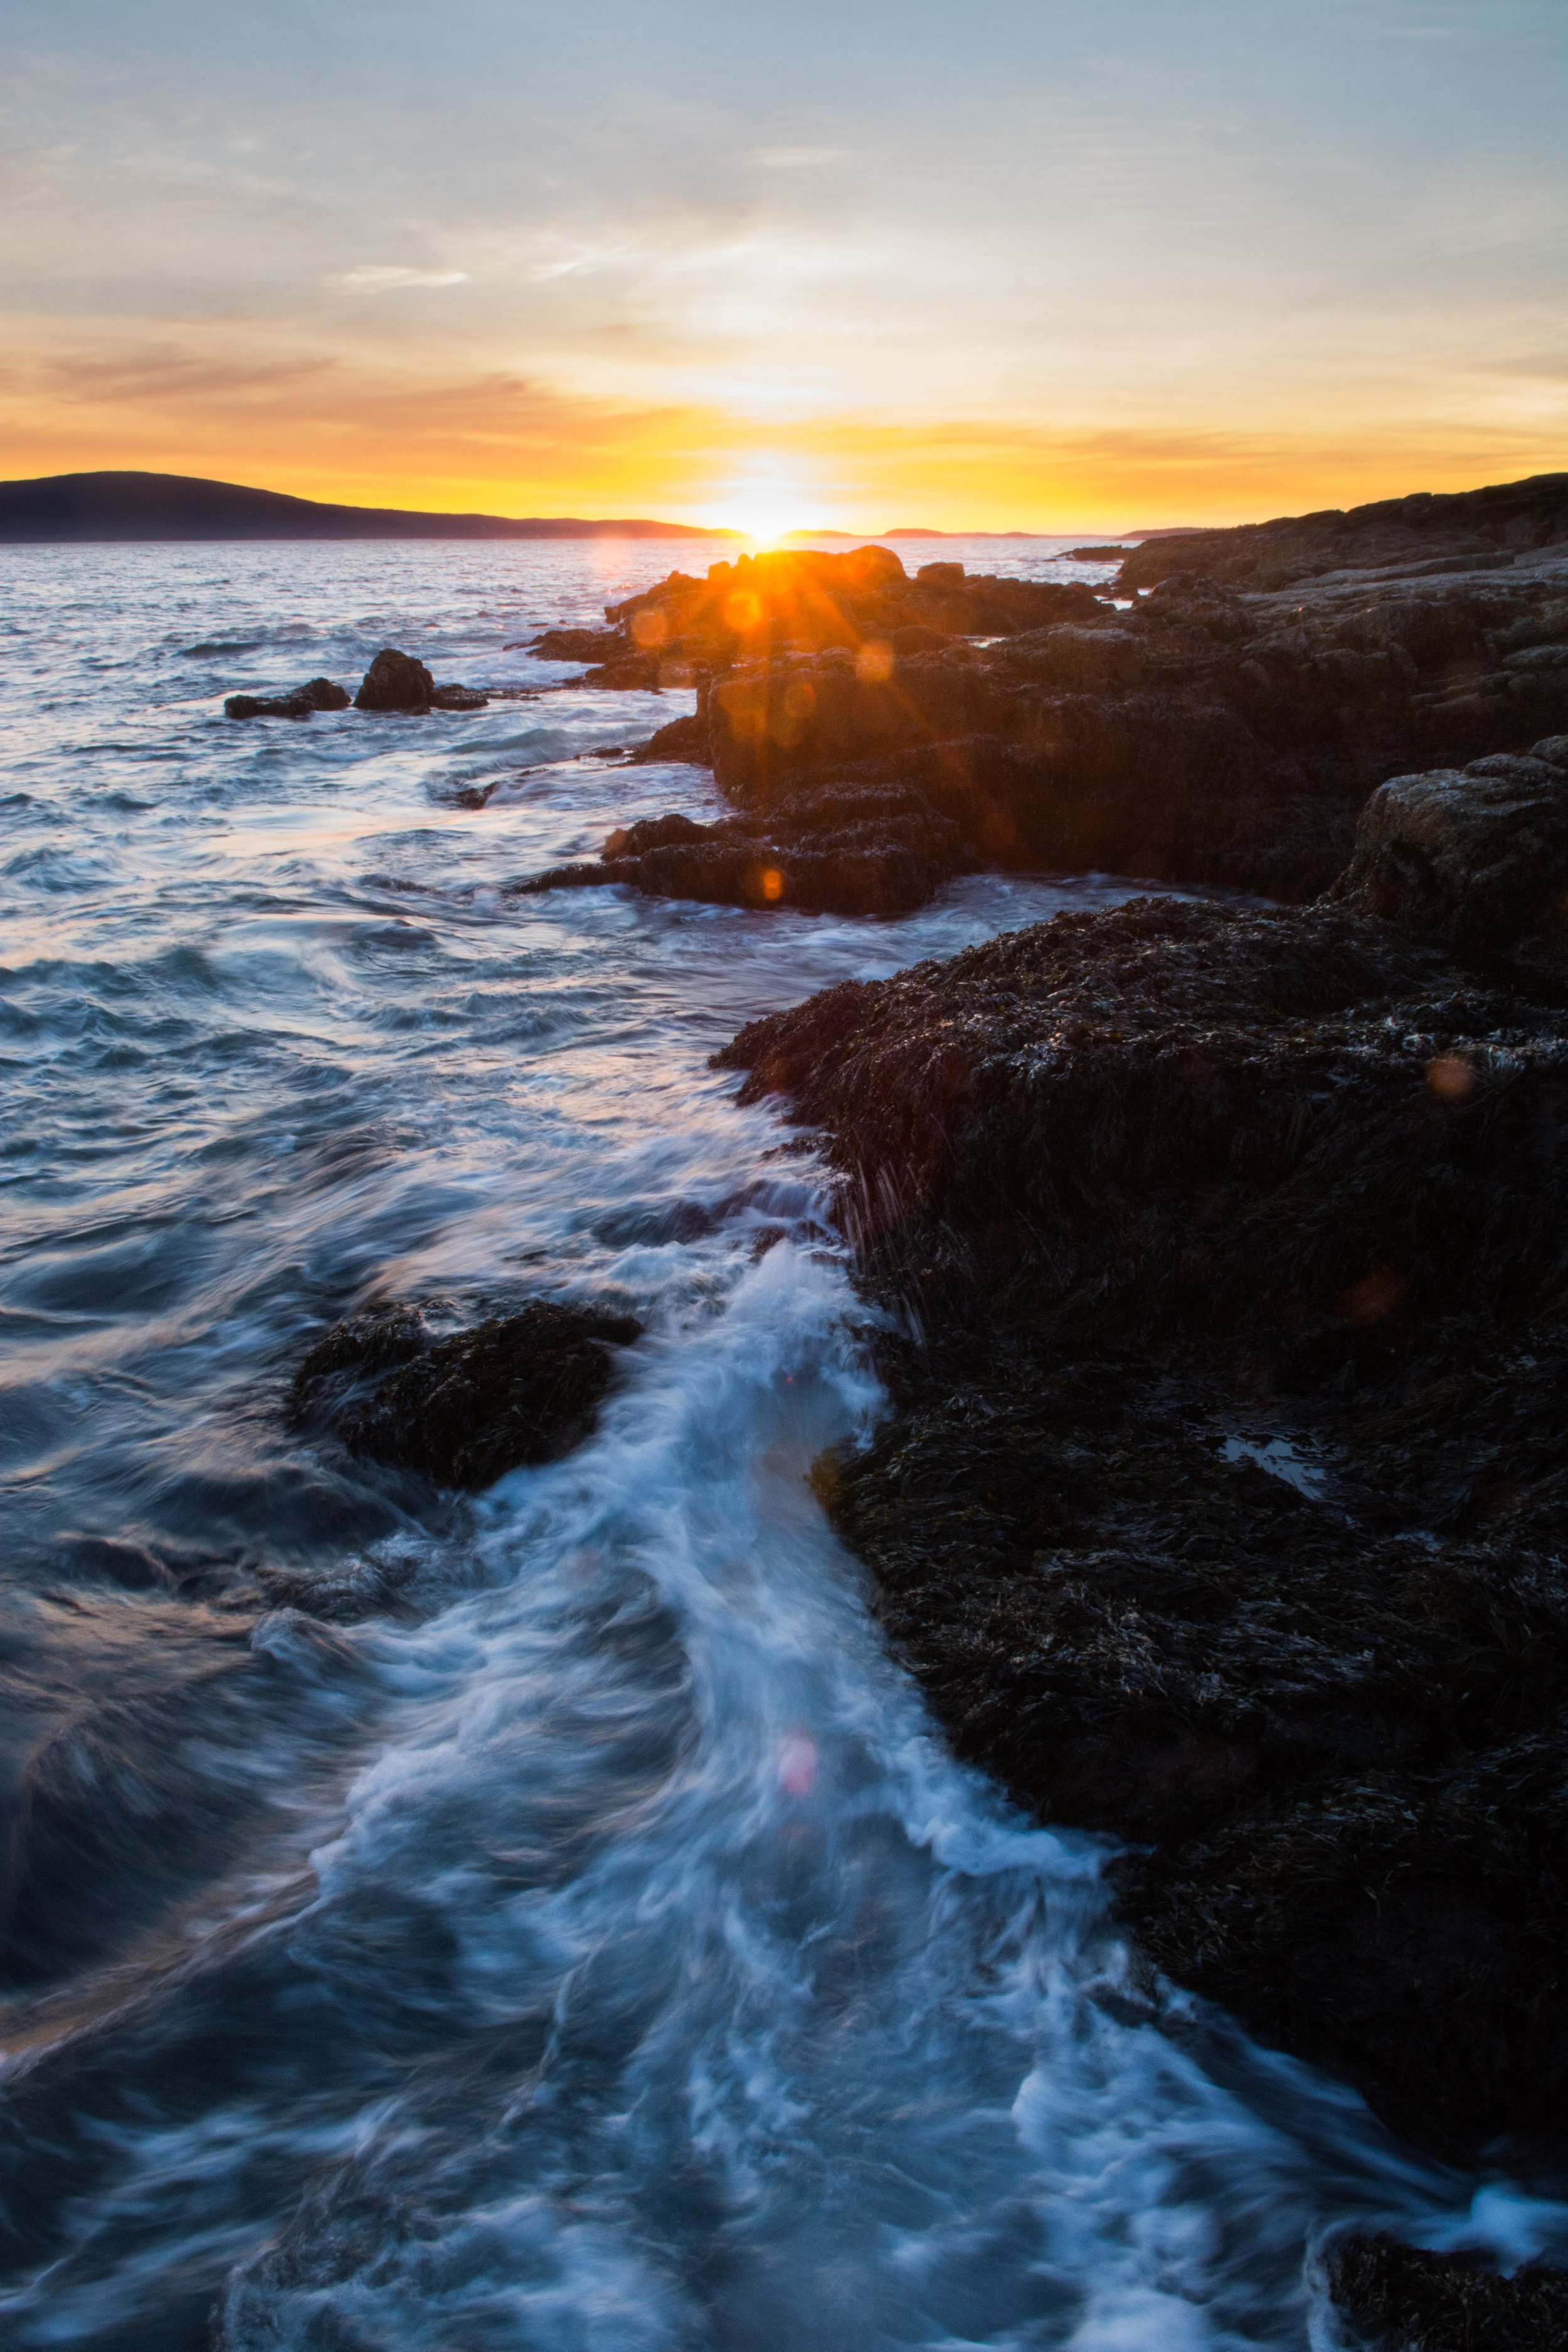 Waves break on the shores of Schoodic Point, part of Acadia National Park.